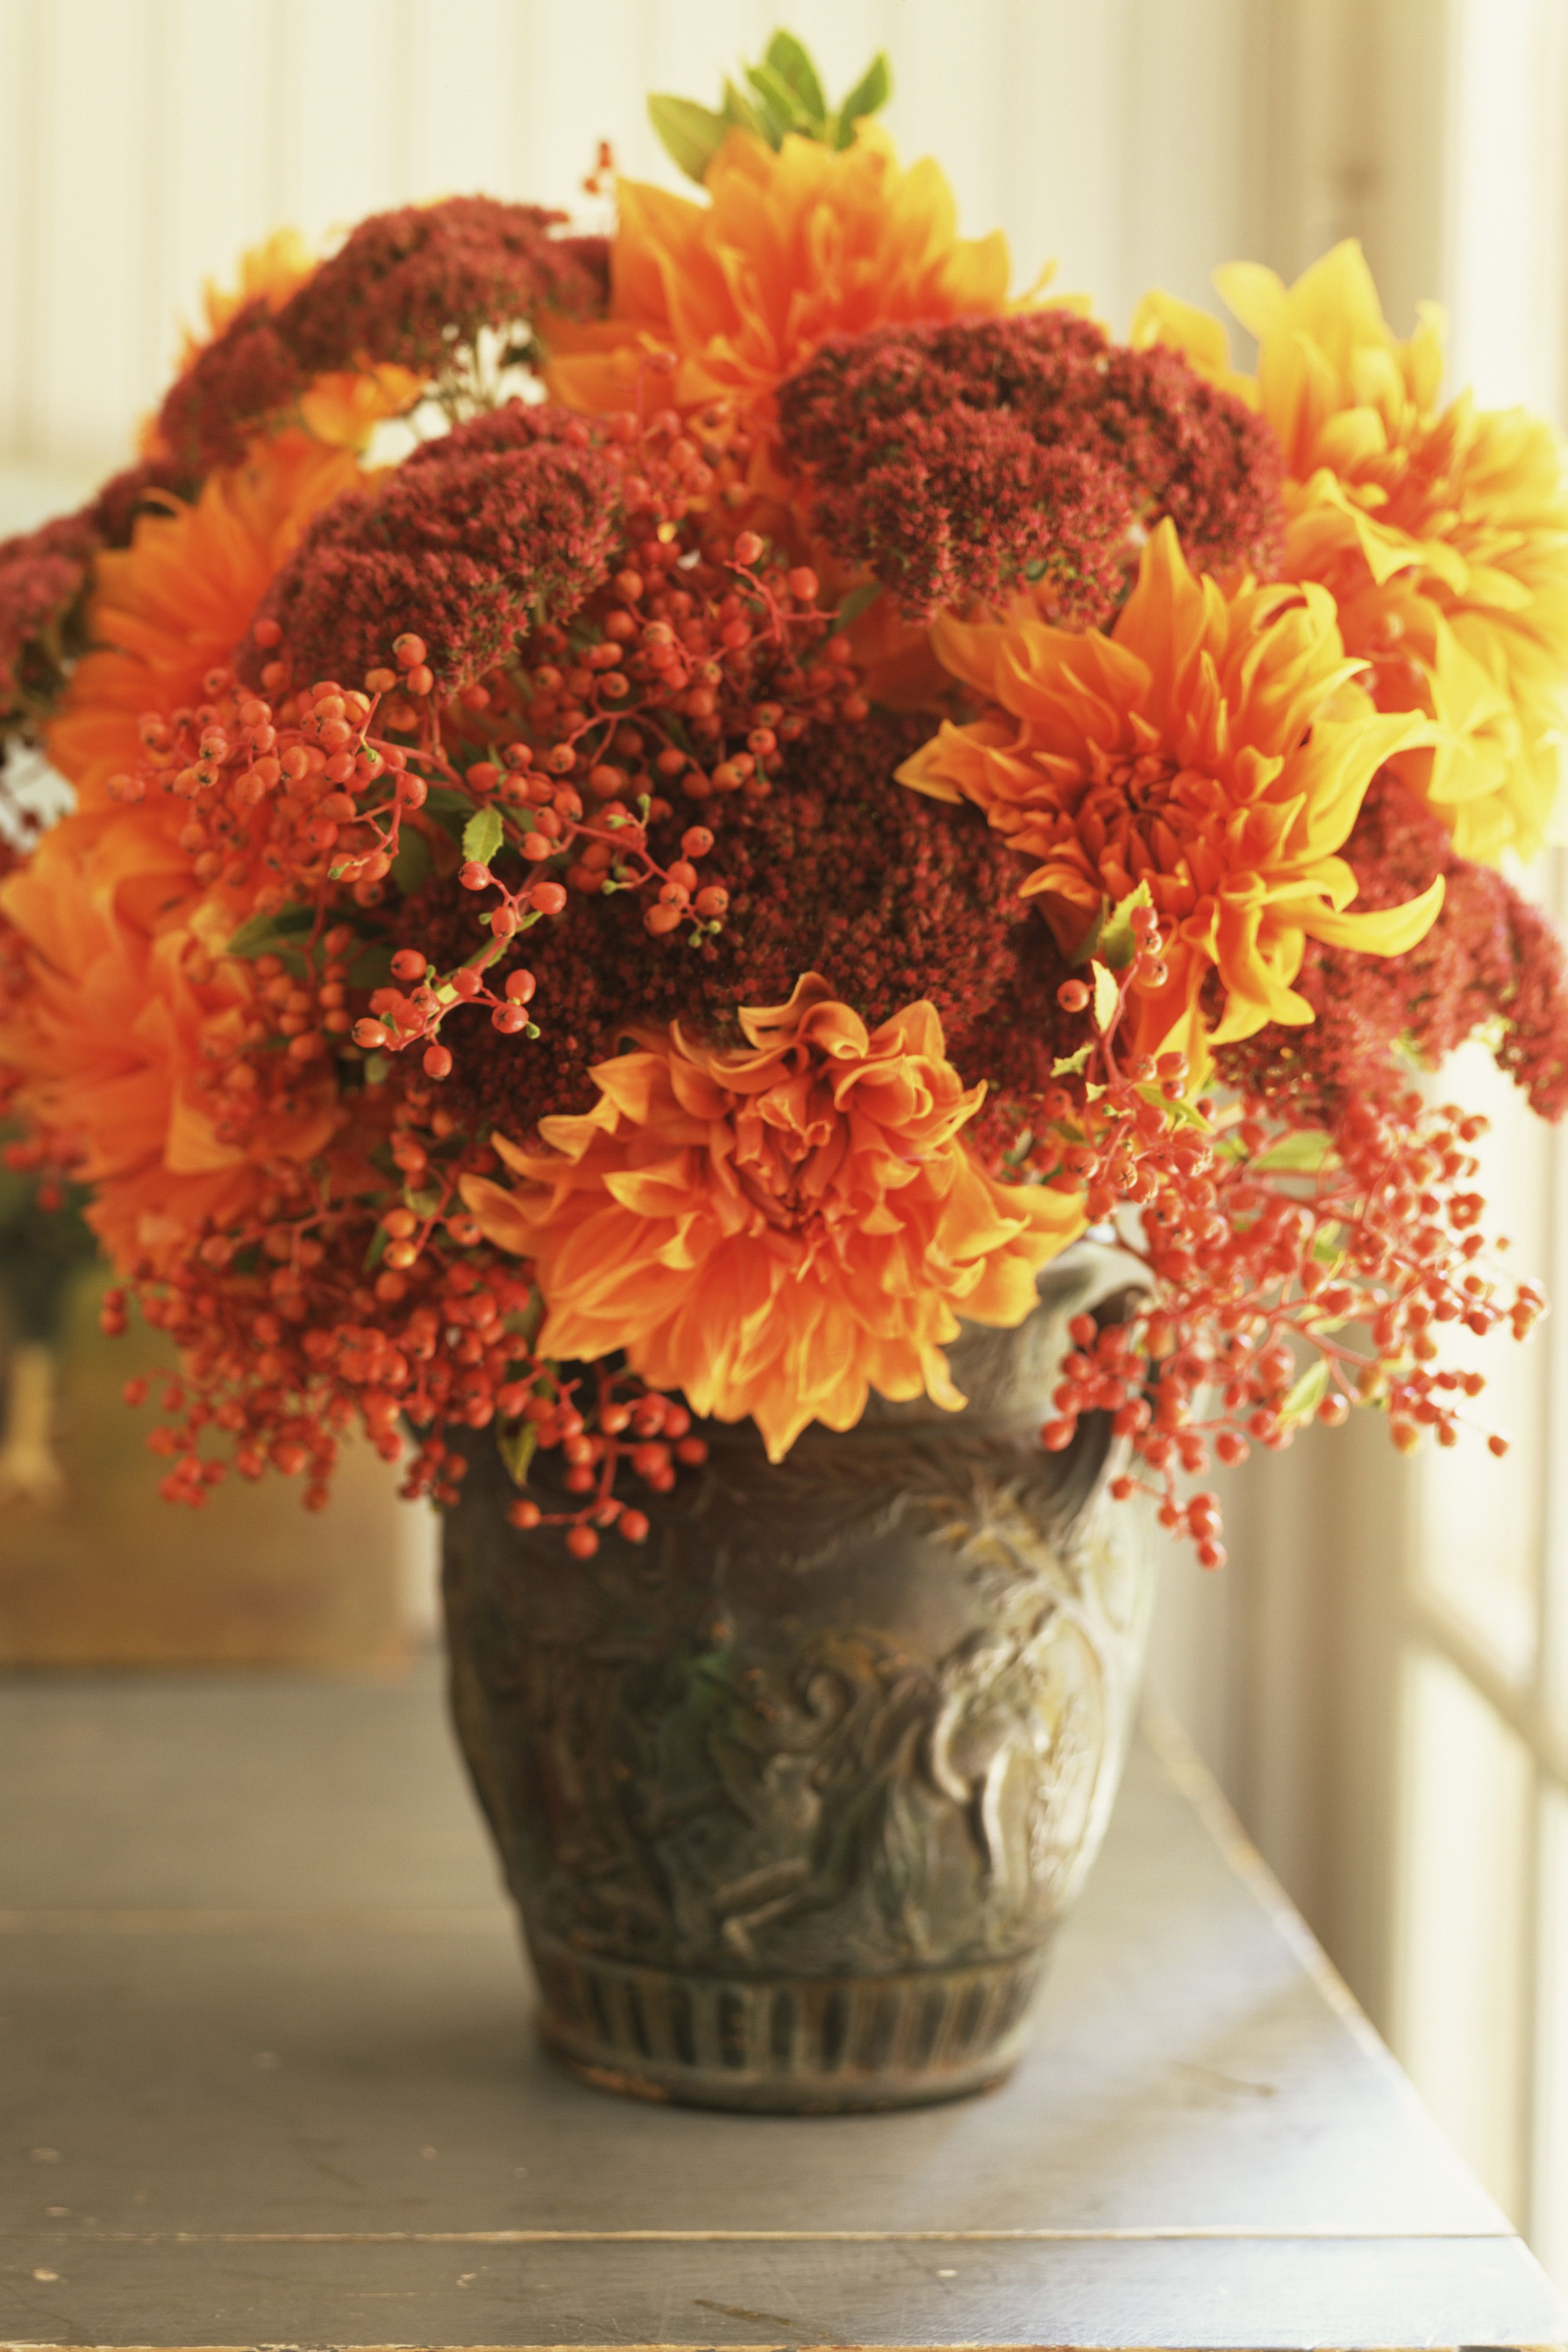 Free Beautiful Desktop Wallpapers For The Fall 30 Fall Flower Arrangements Ideas For Fall Table